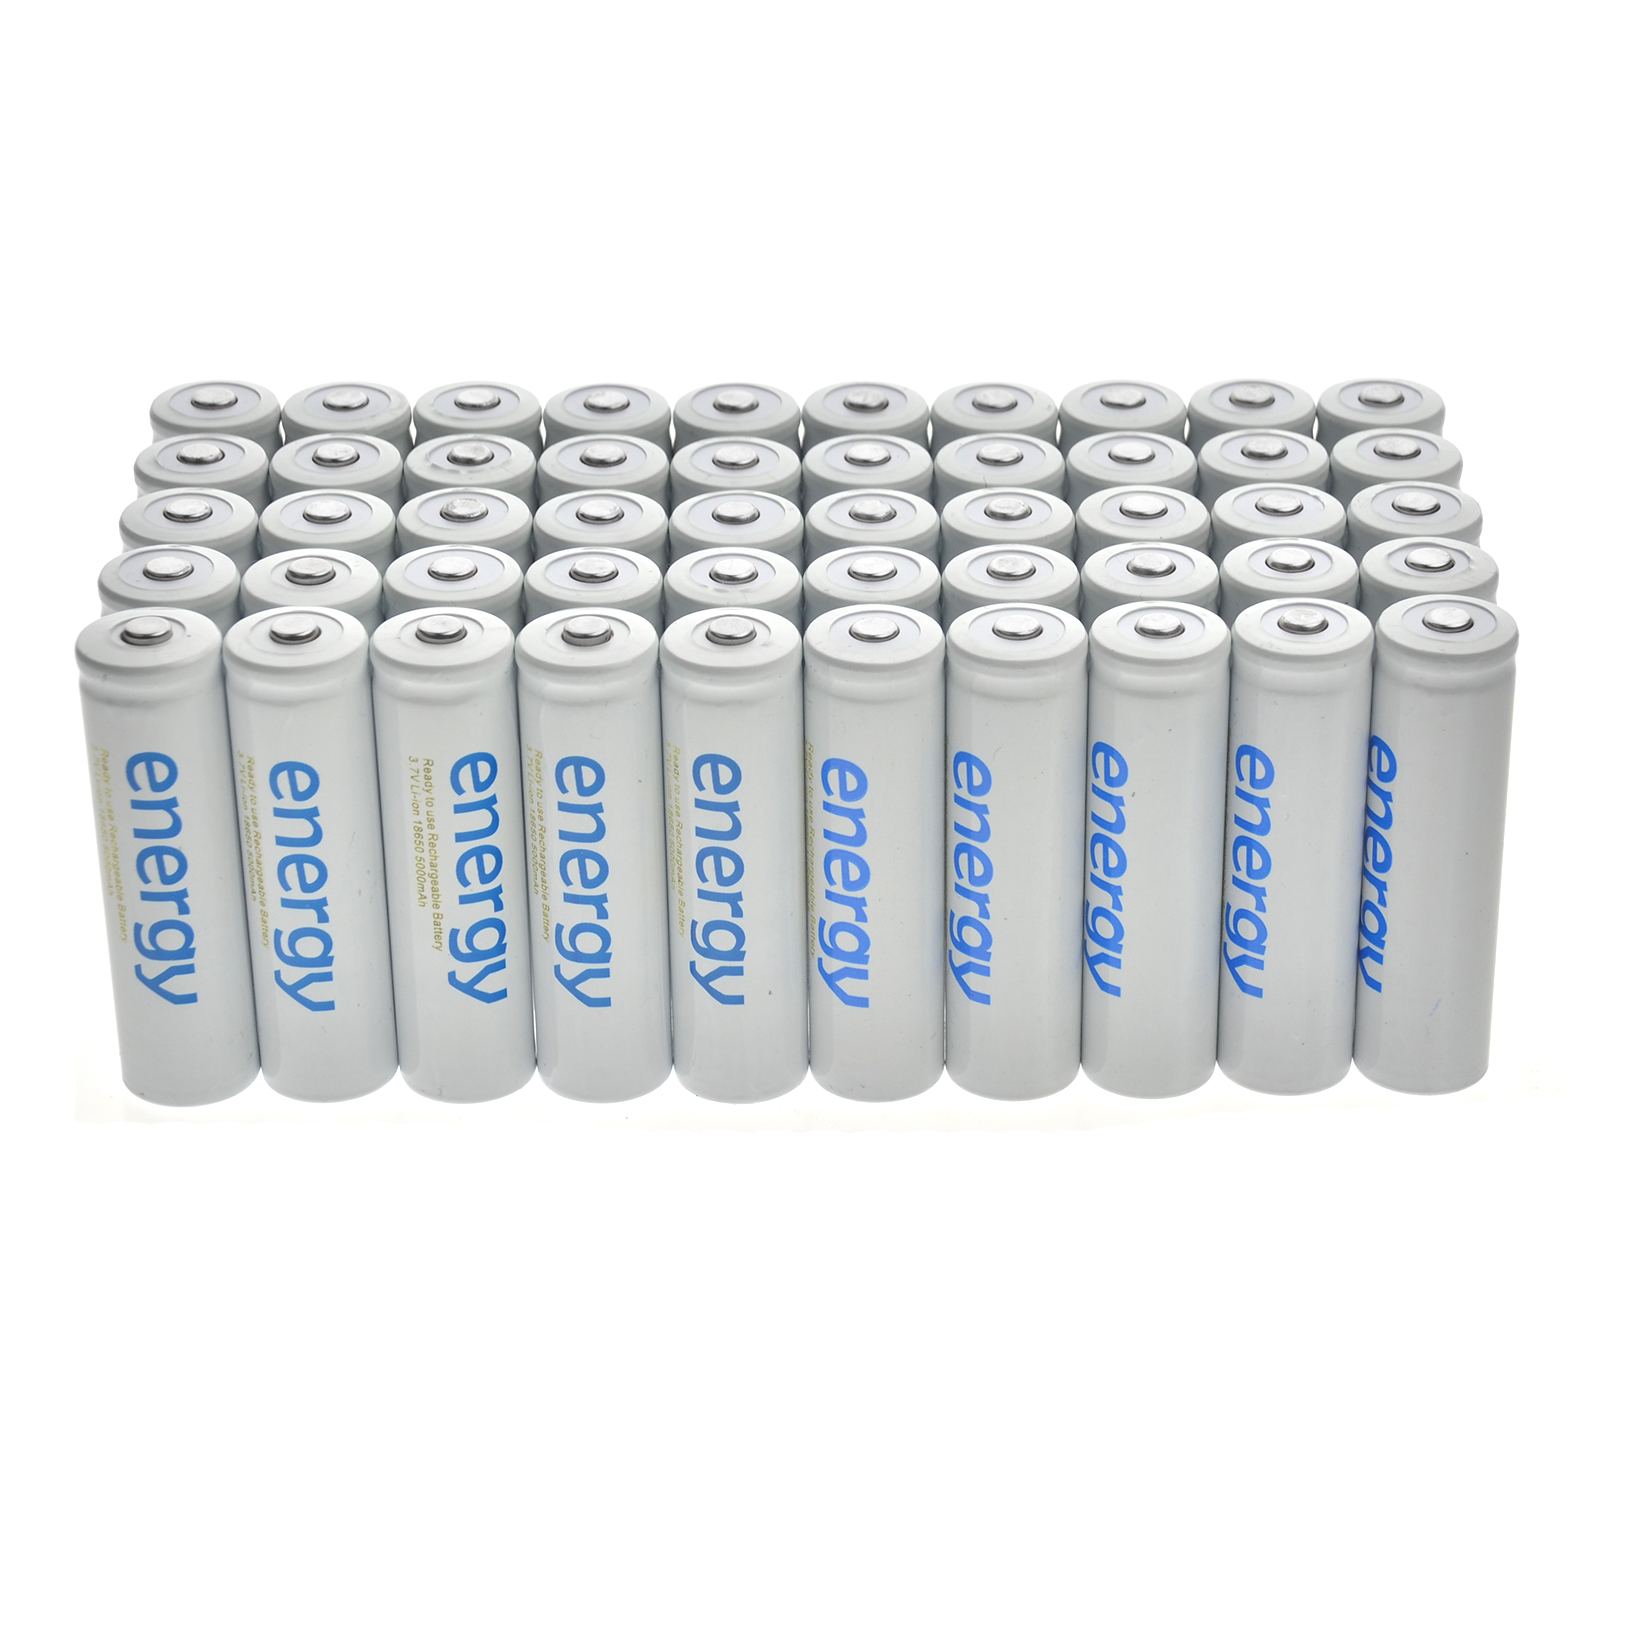 2-100pcs 18650 3.7V 5000mAh Li-ion Rechargeable Battery Cell For Flashlight USA